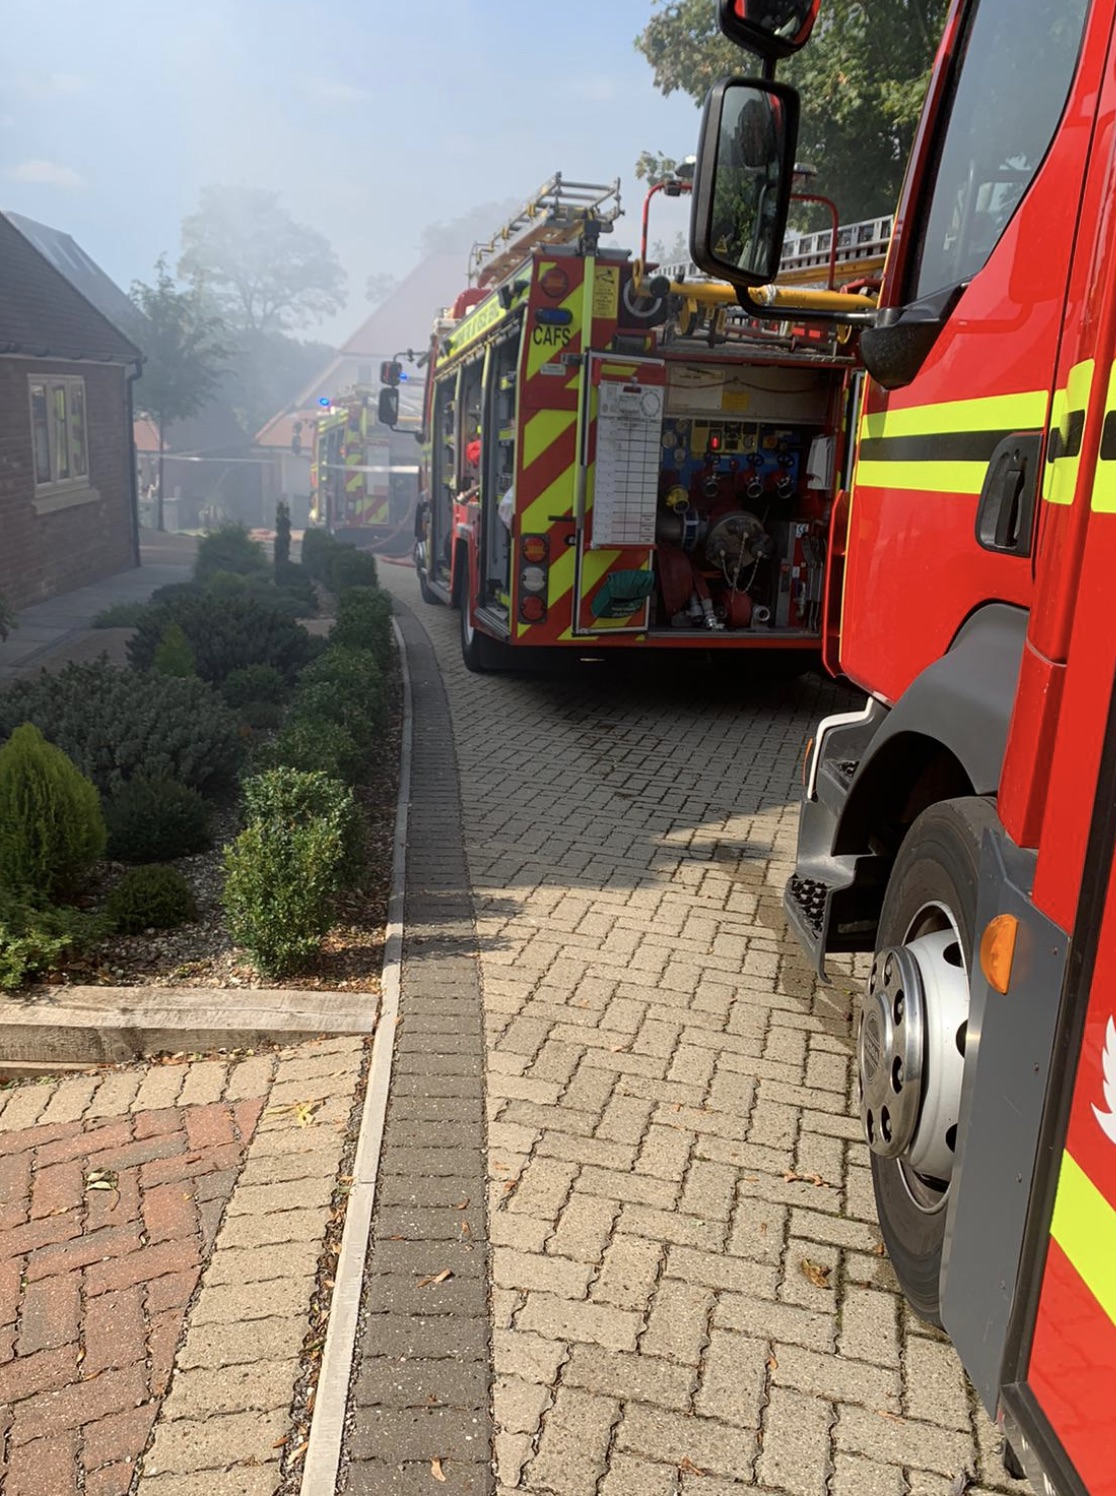 Fire Service control operators received a number of calls and crews from Winchester, Eastleigh, Sutton Scotney, Andover, Whitchurch, Fareham and Ringwood were sent to the blaze, UKNIP